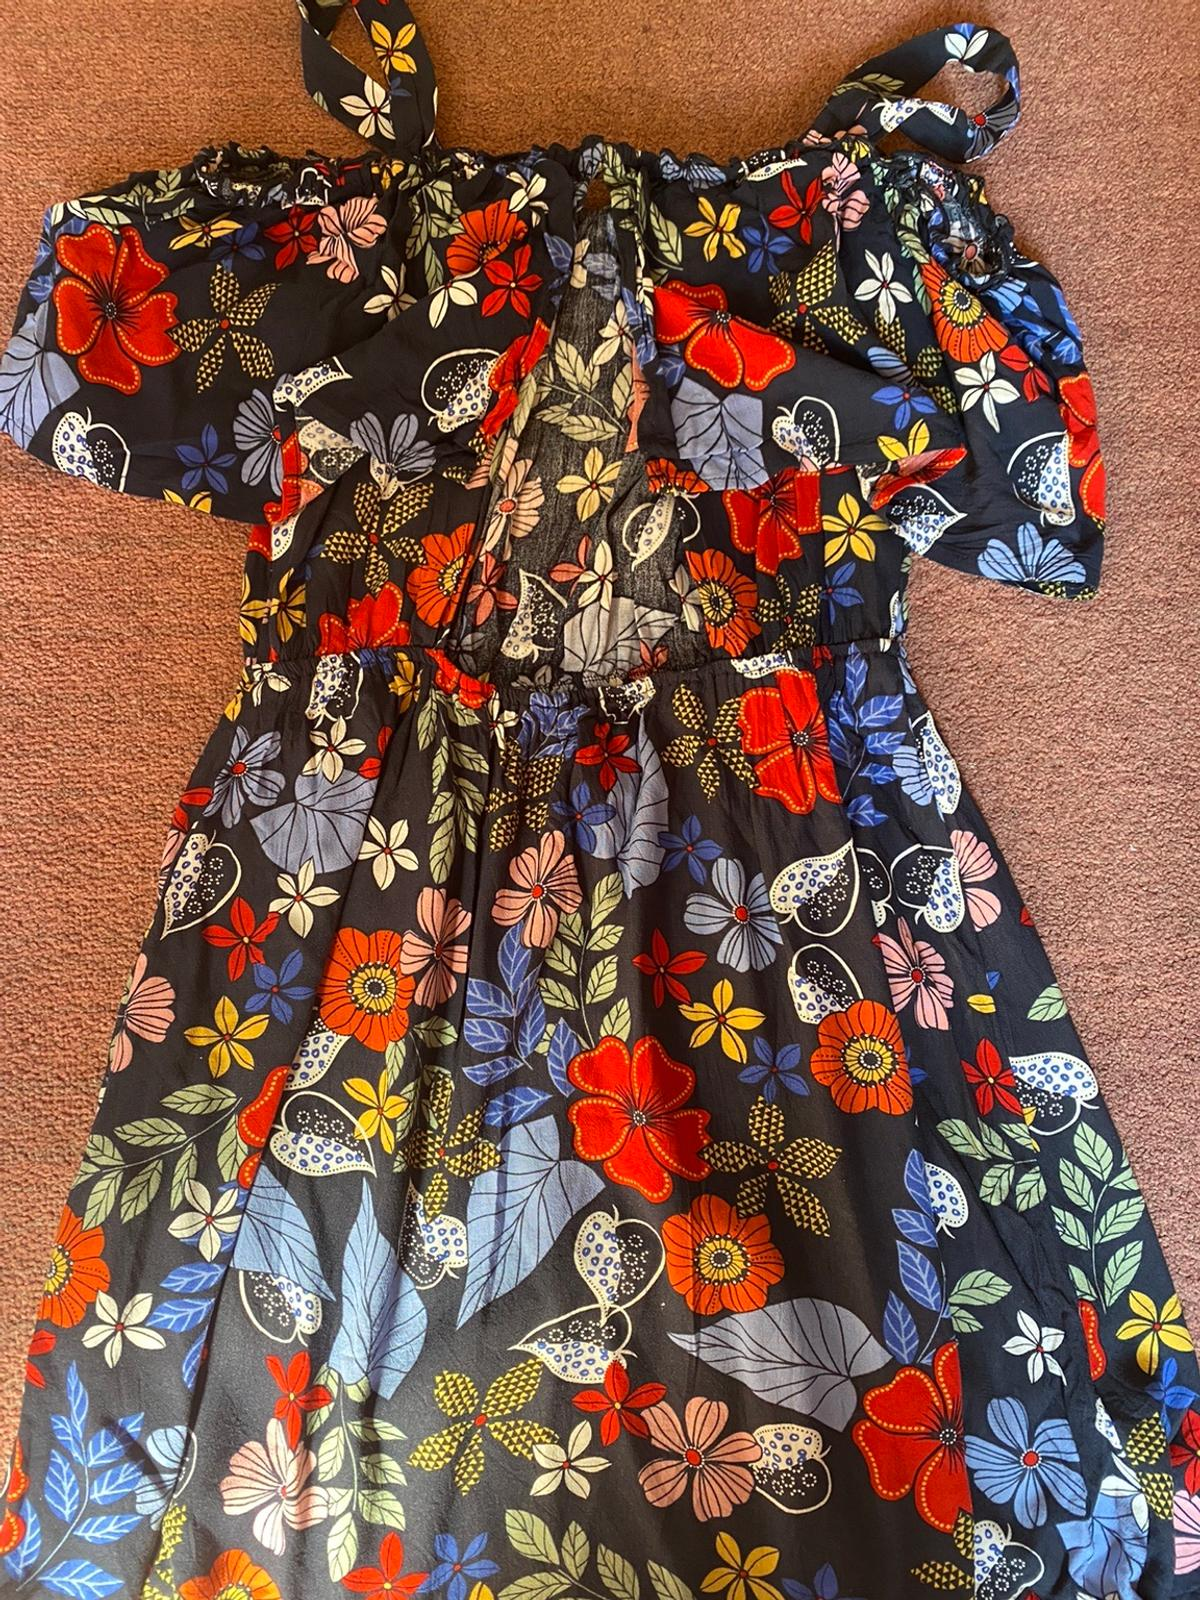 size S, used once only, condition very good